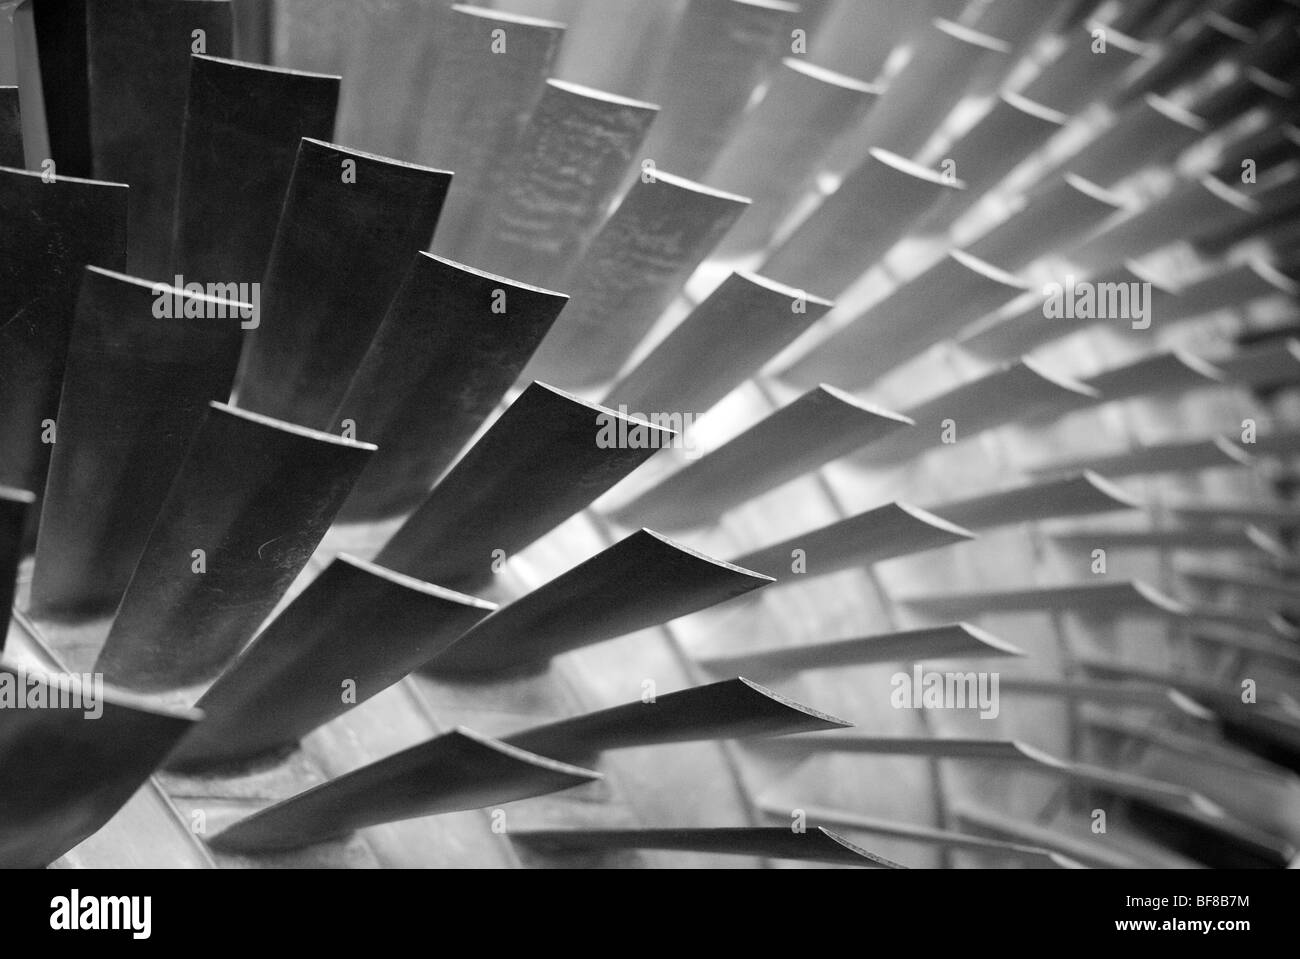 close-up of turbine blades in a high bypass ratio jet engine - Stock Image